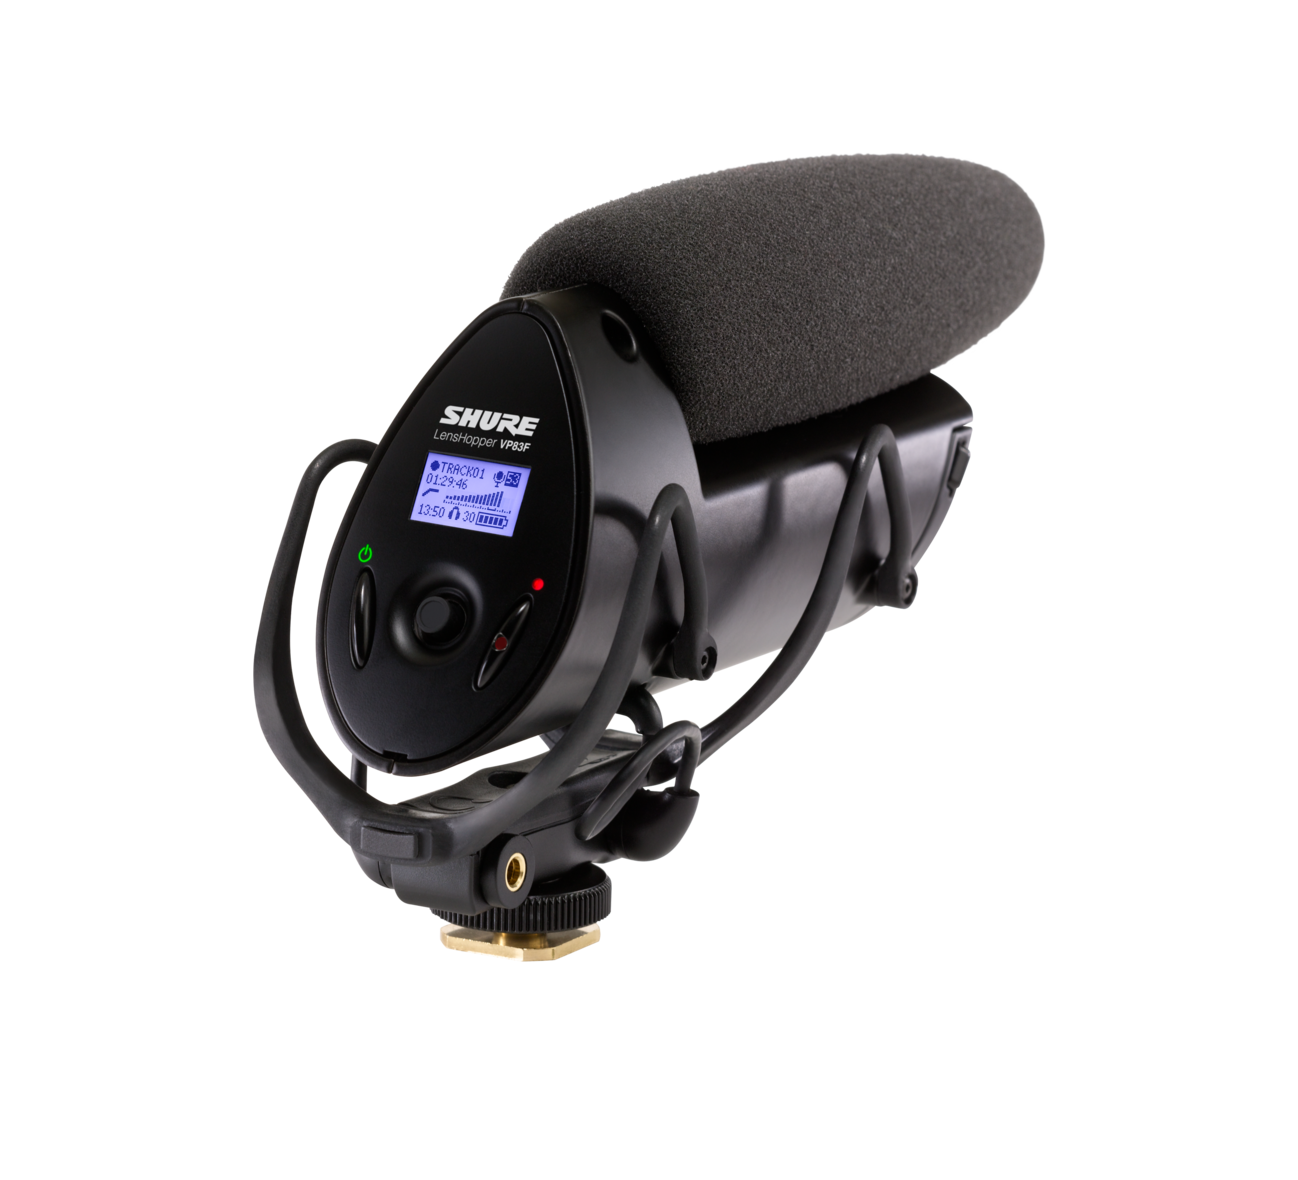 Shure VP83F LensHopper with Flash -Camera Mounted Shotgun Microphone